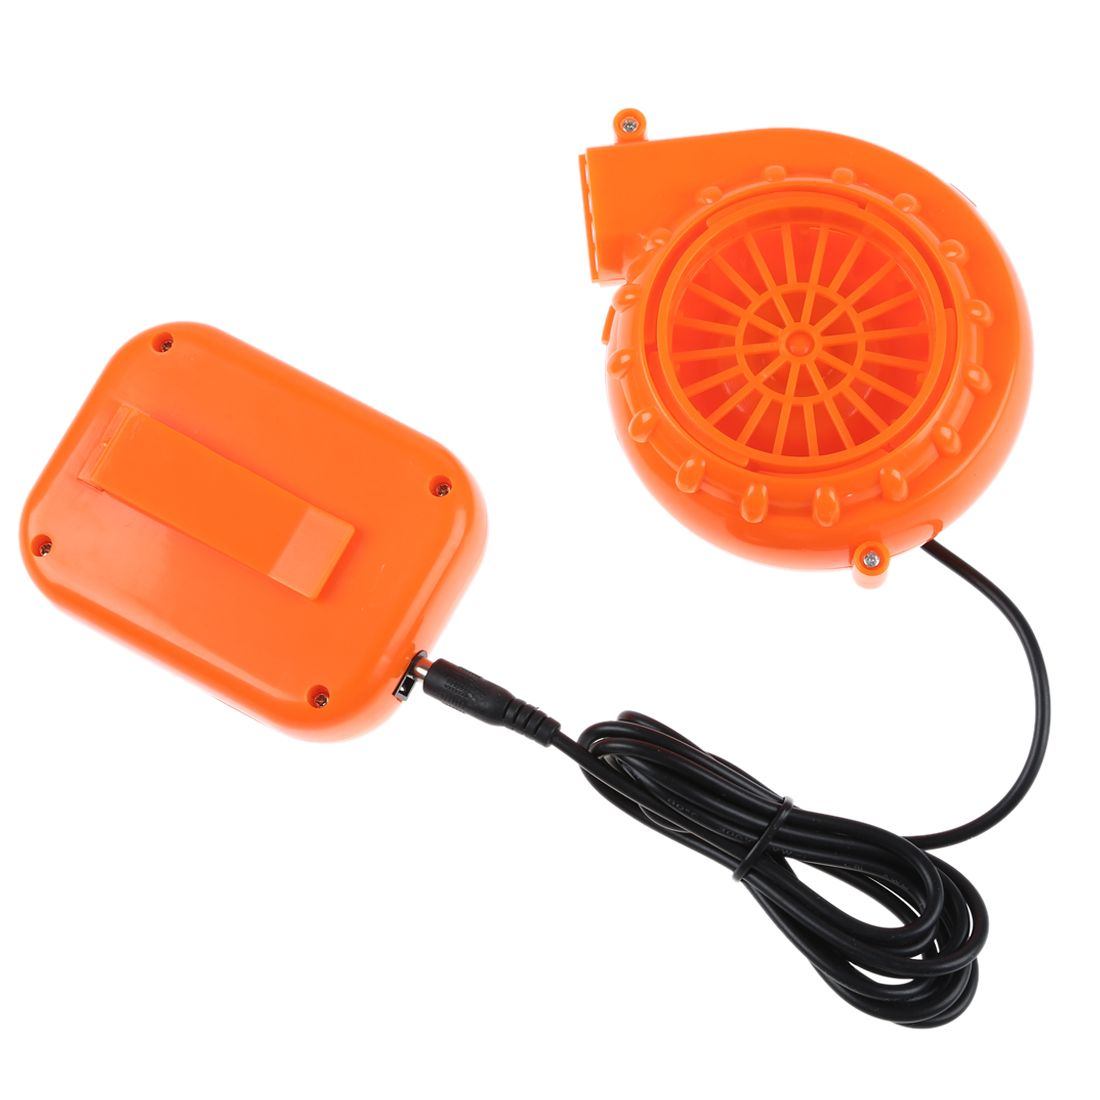 THGS Mini Fan Blower for Mascot Head Inflatable Costume 6V Powered by Dry Battery